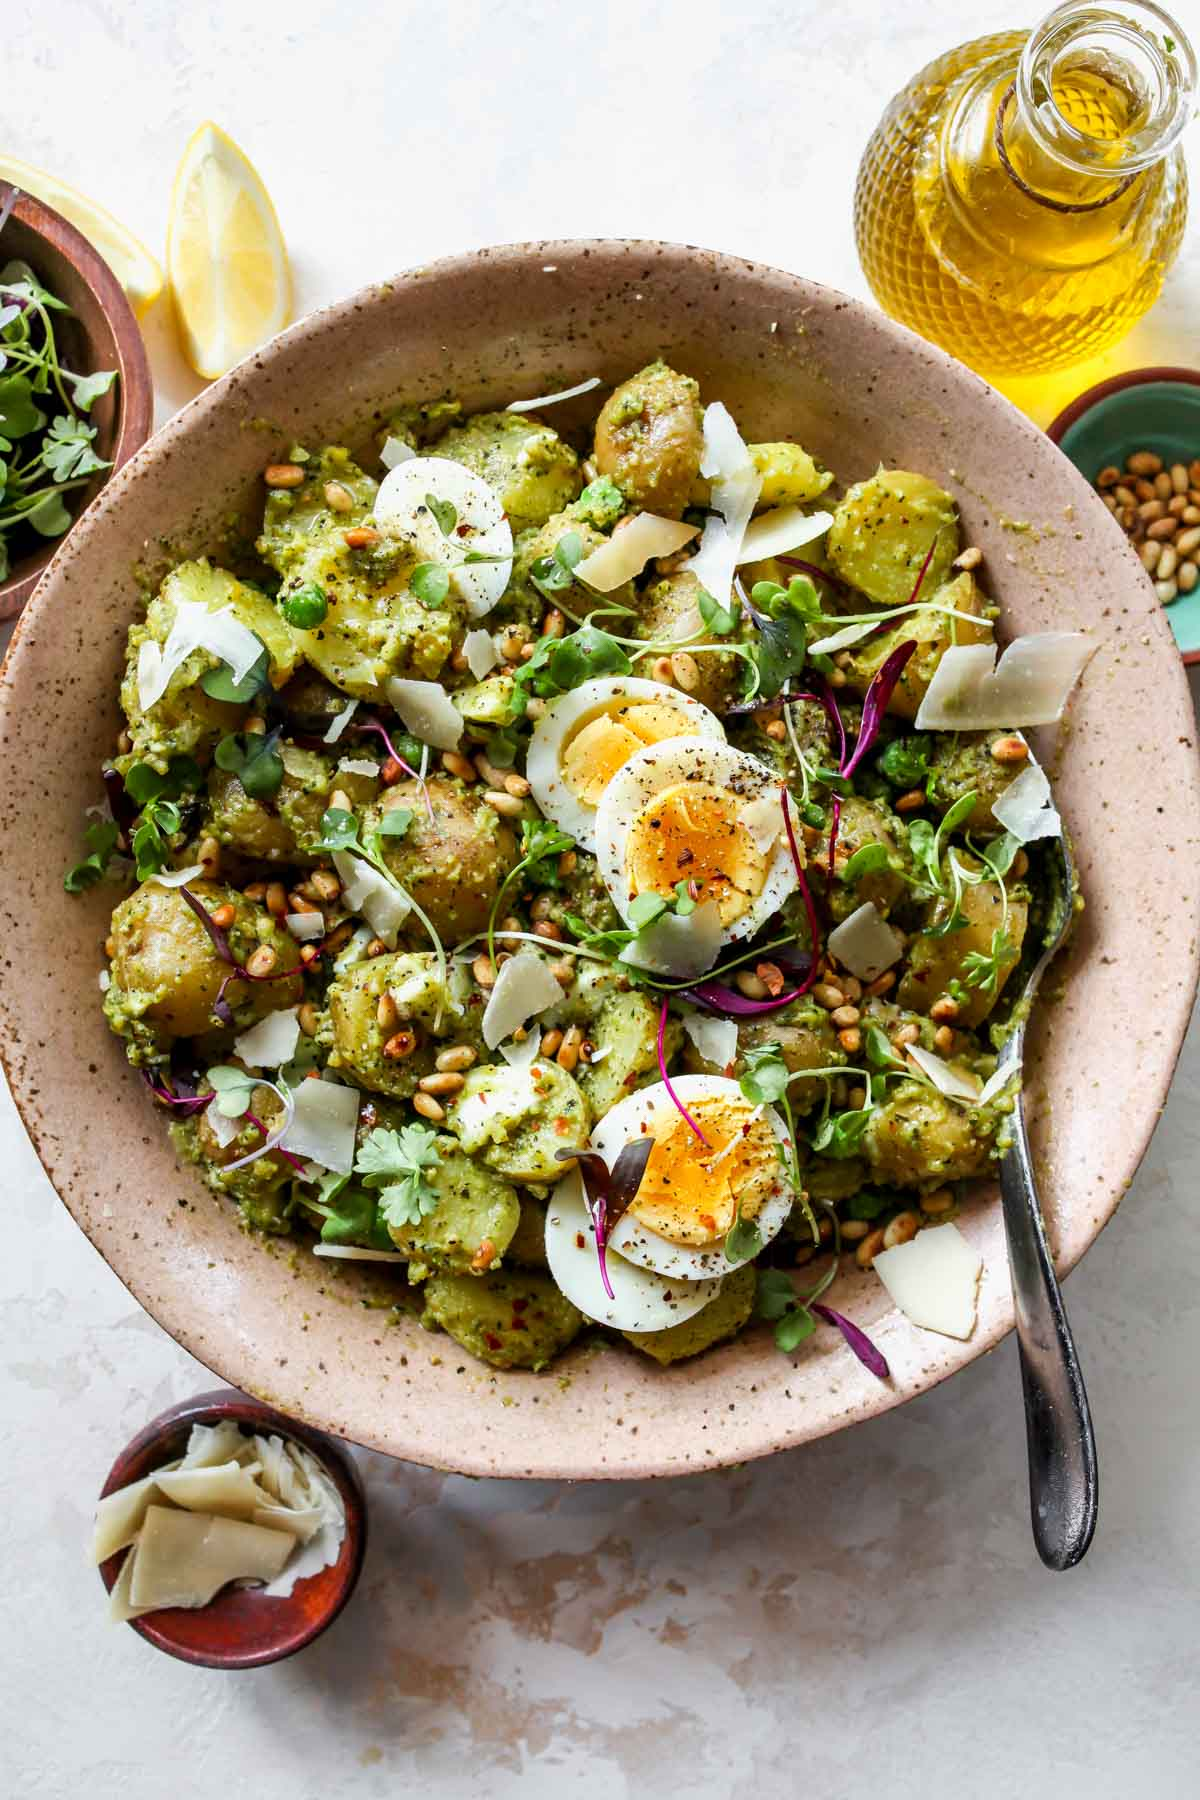 Pesto potato salad styled in a pink bowl